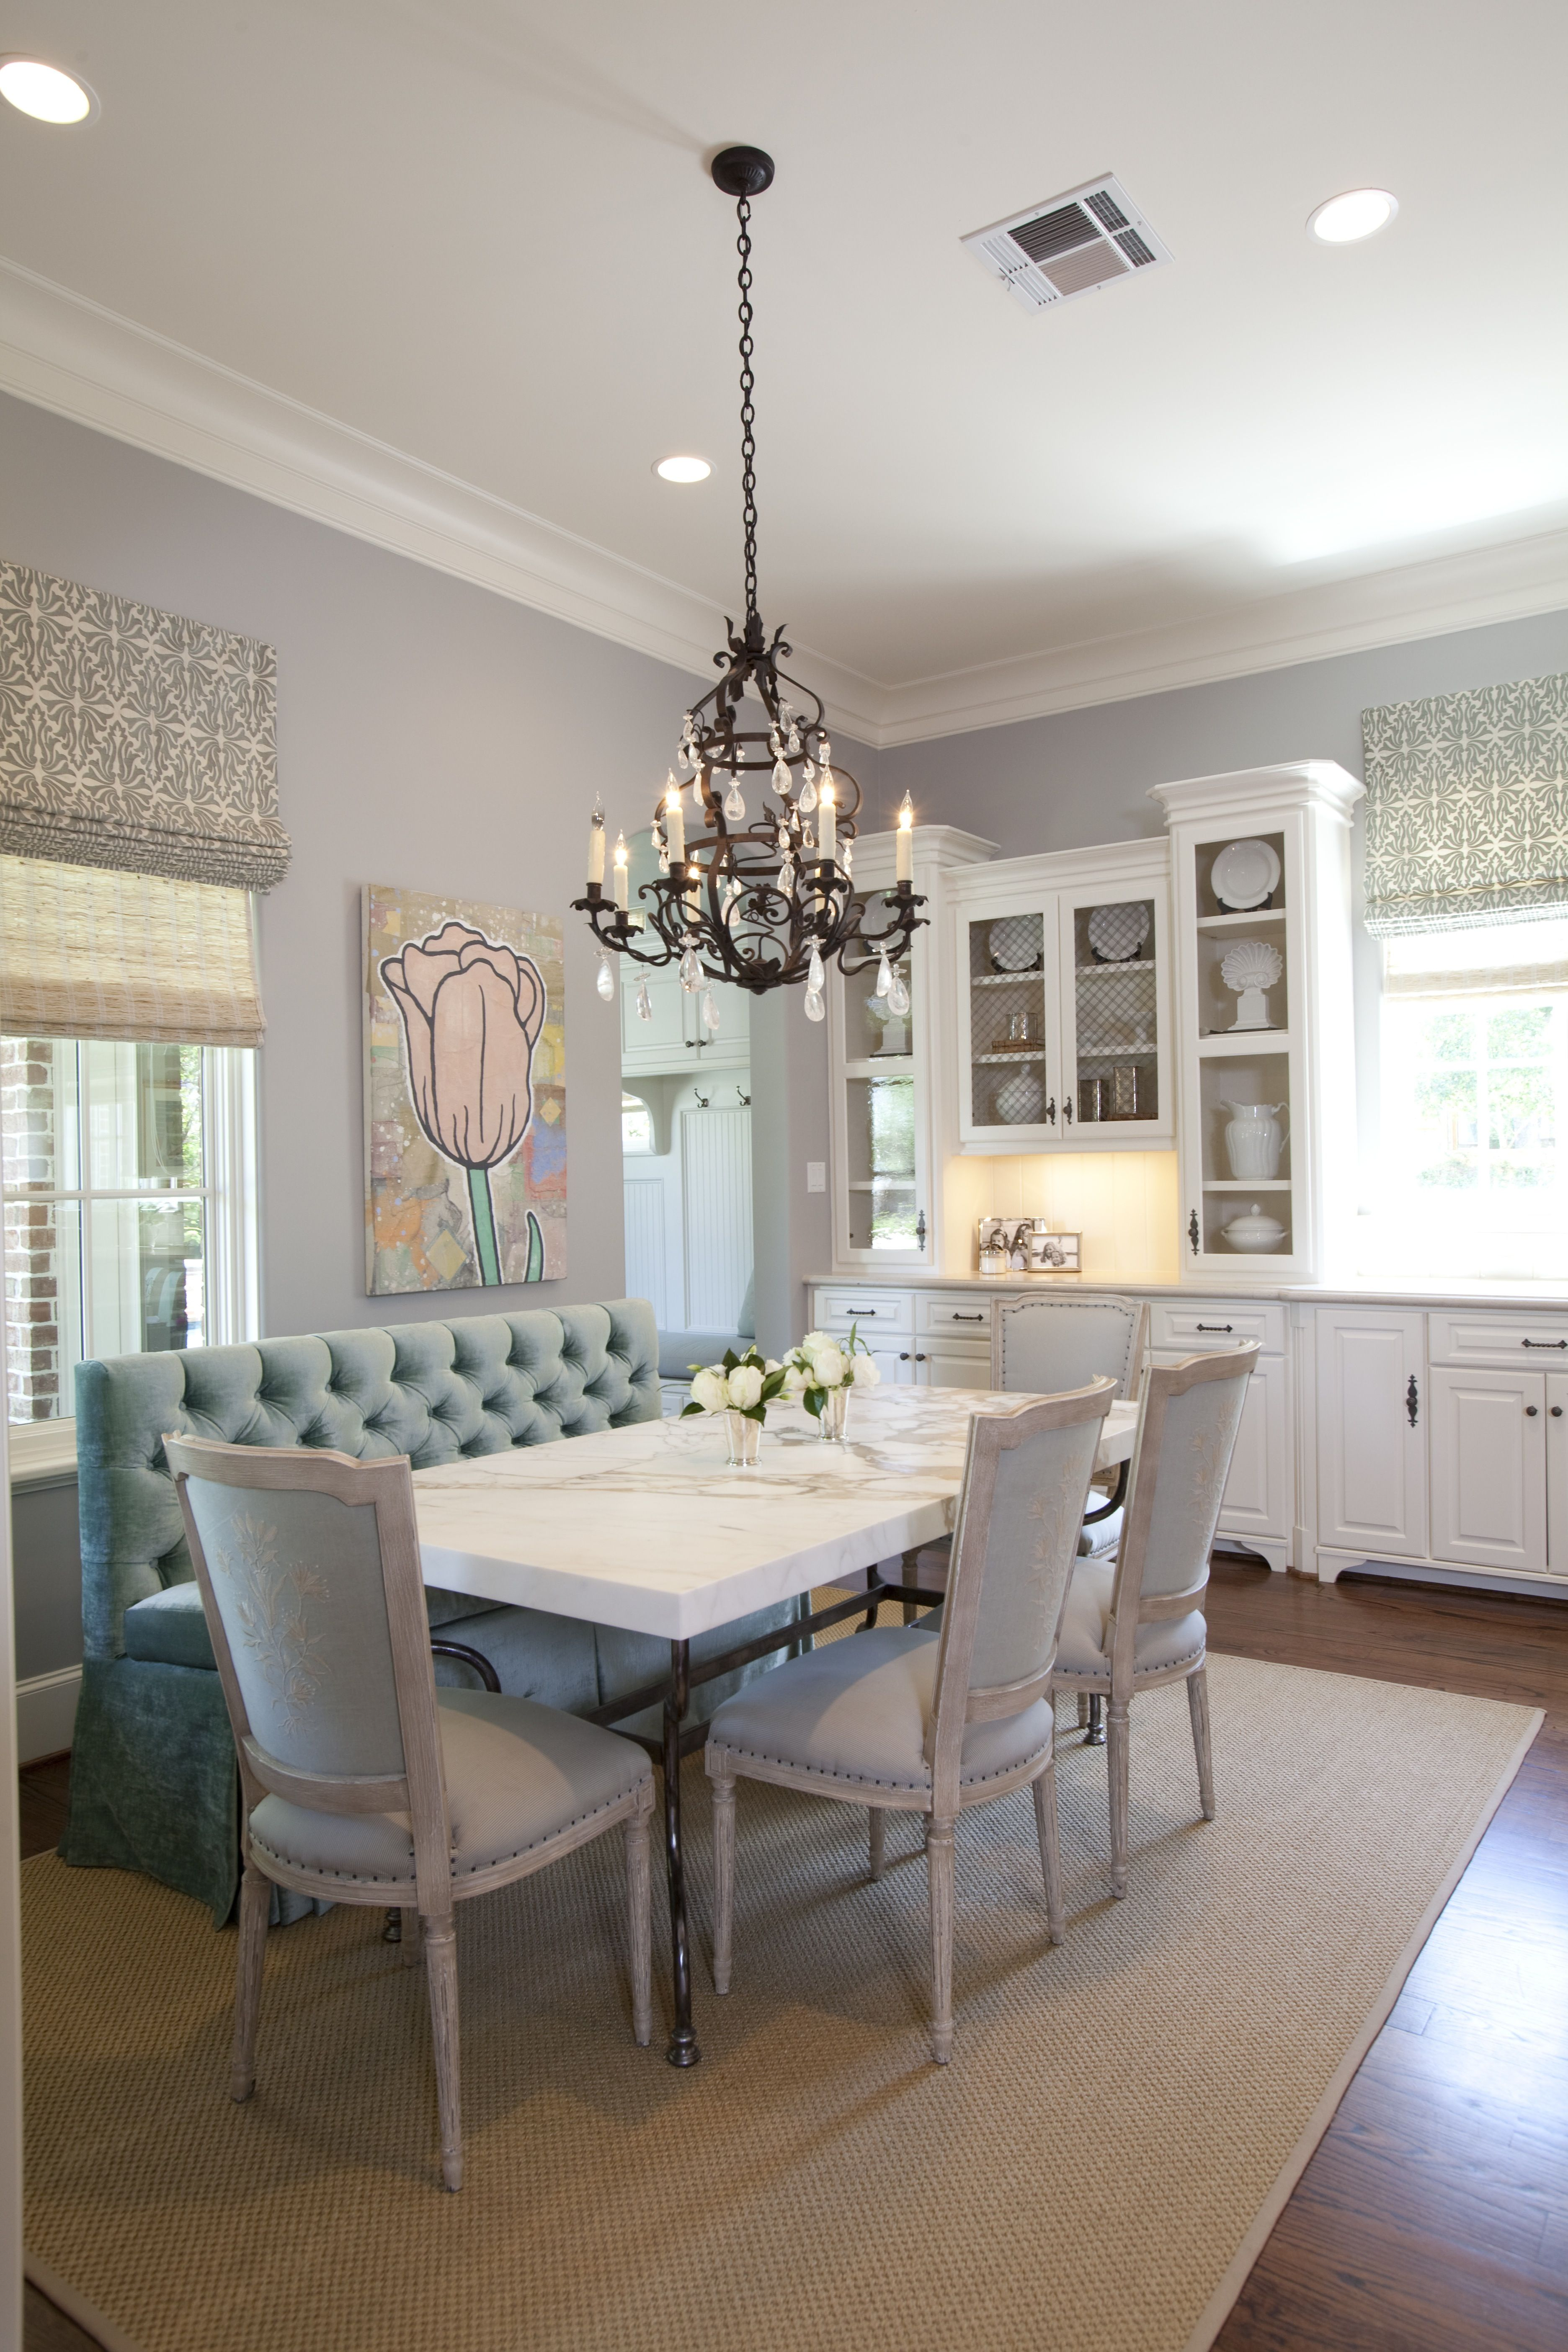 31+ Dining table bench seat Ideas